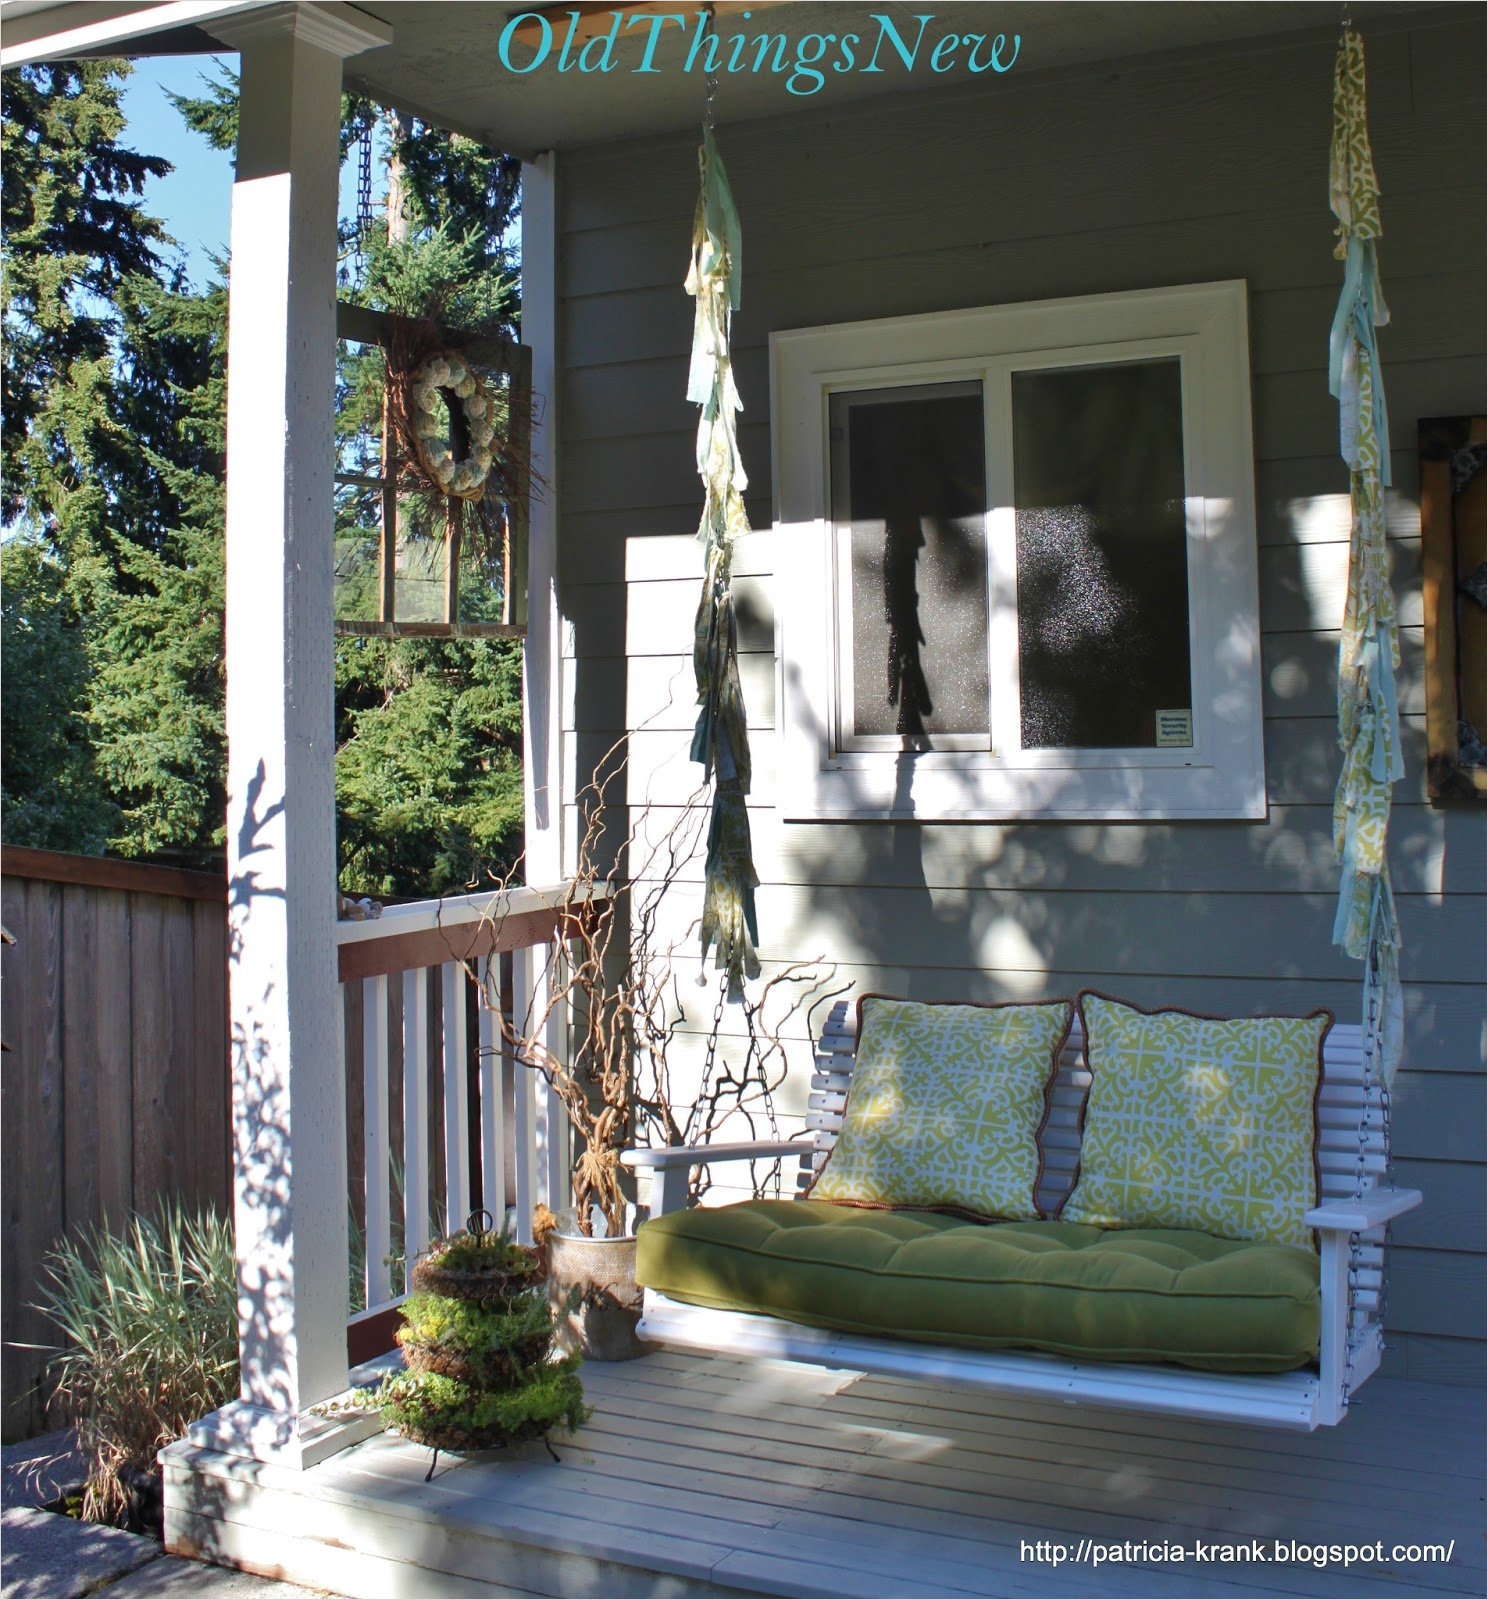 40 Beautiful Summer Porch Decorating Ideas 93 Summer Porch Decor – Old Things New 9